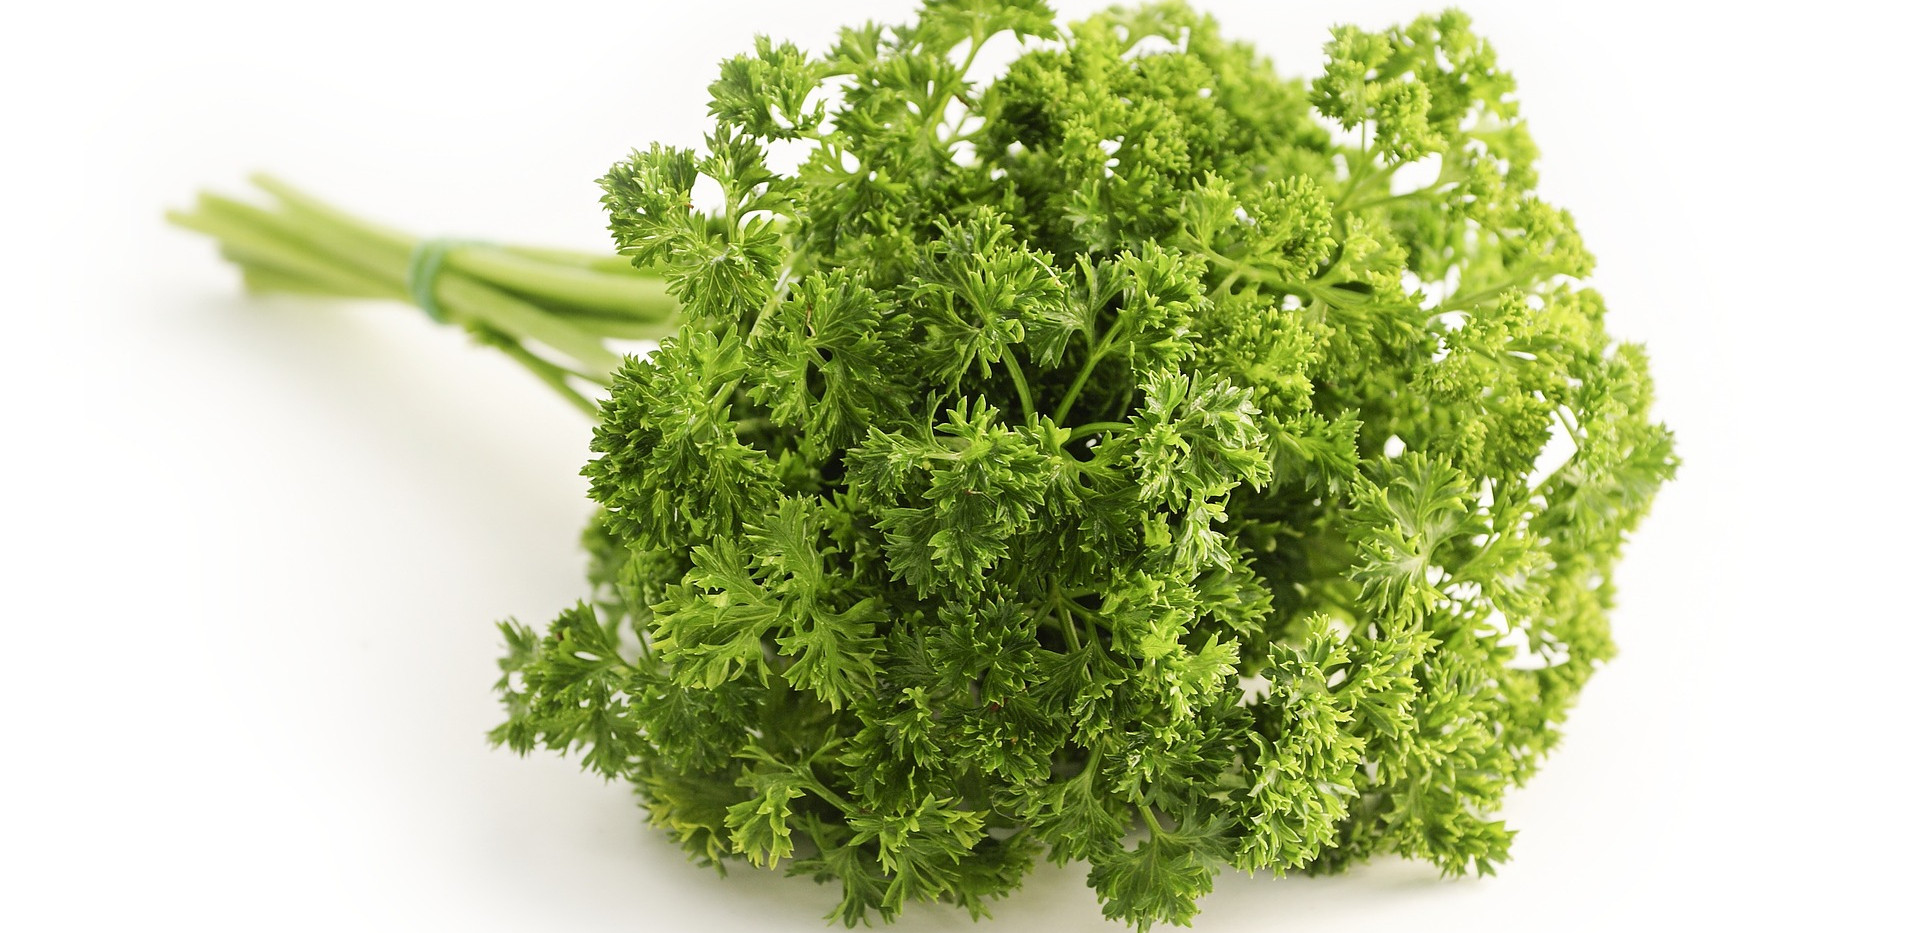 parsley-1665402_1920.jpg